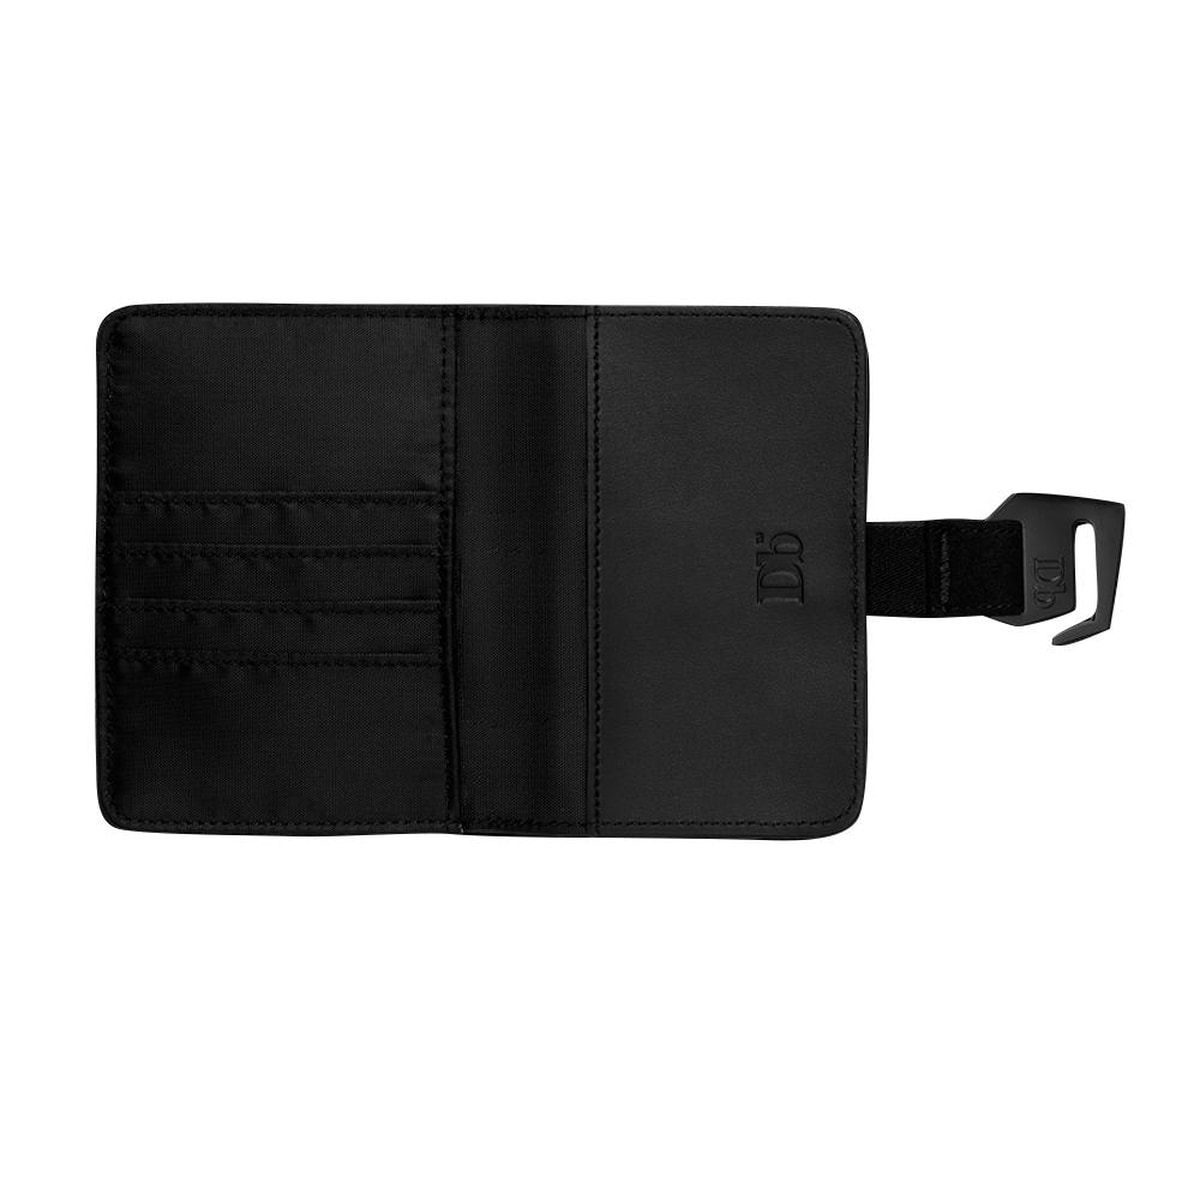 Db - The Voyager Passport Cover